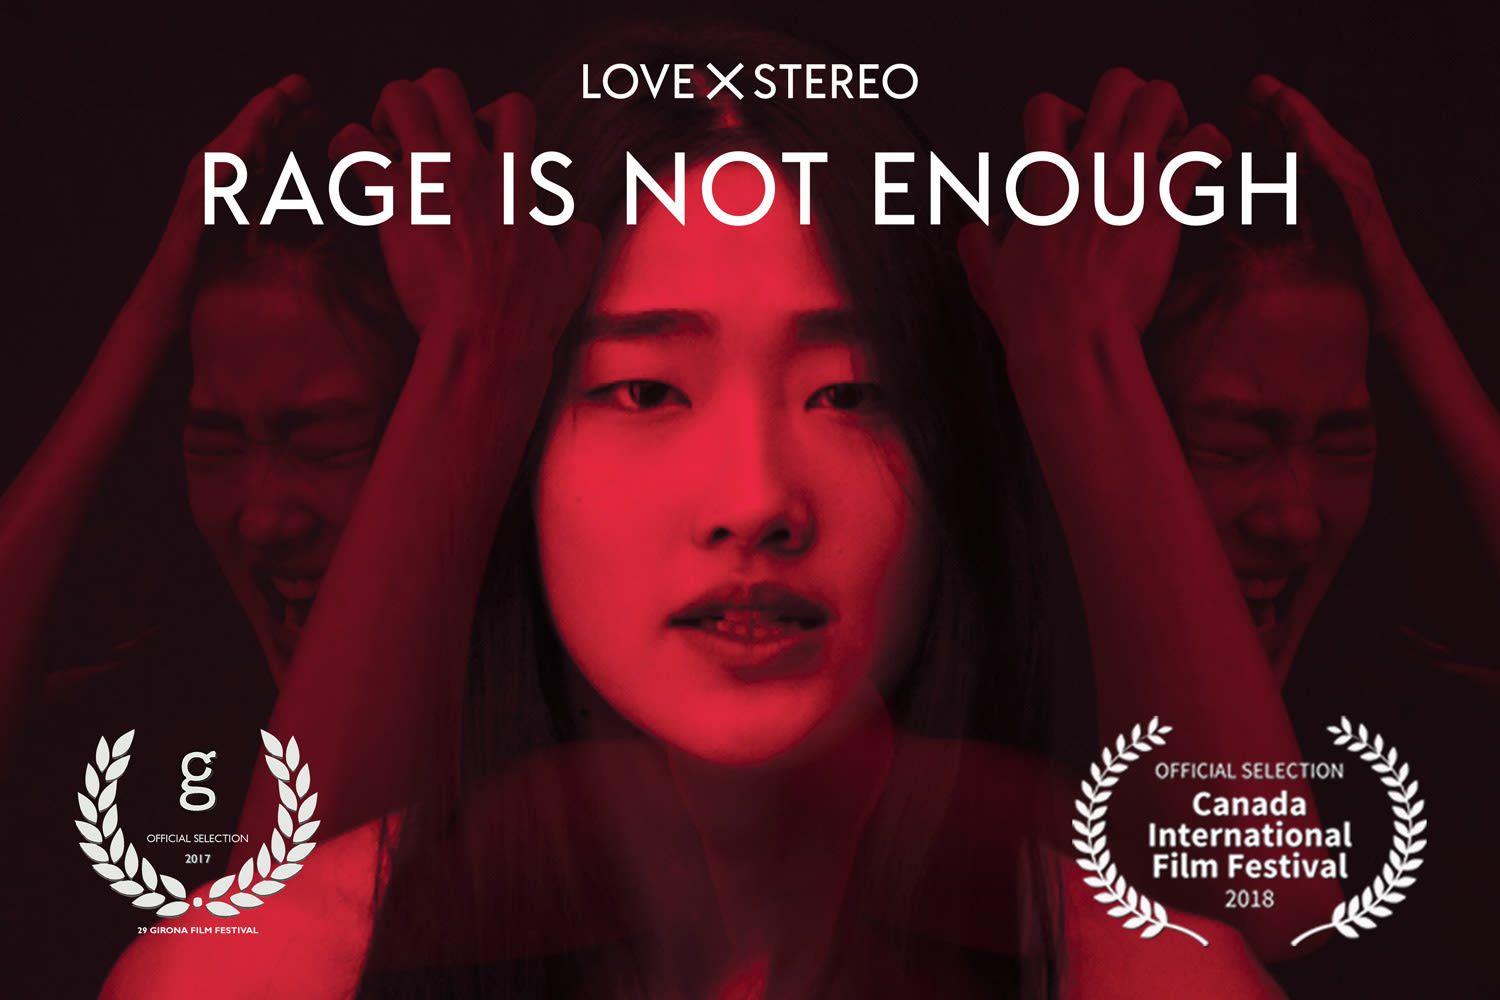 Rage Is Not Enough - Love X Stereo